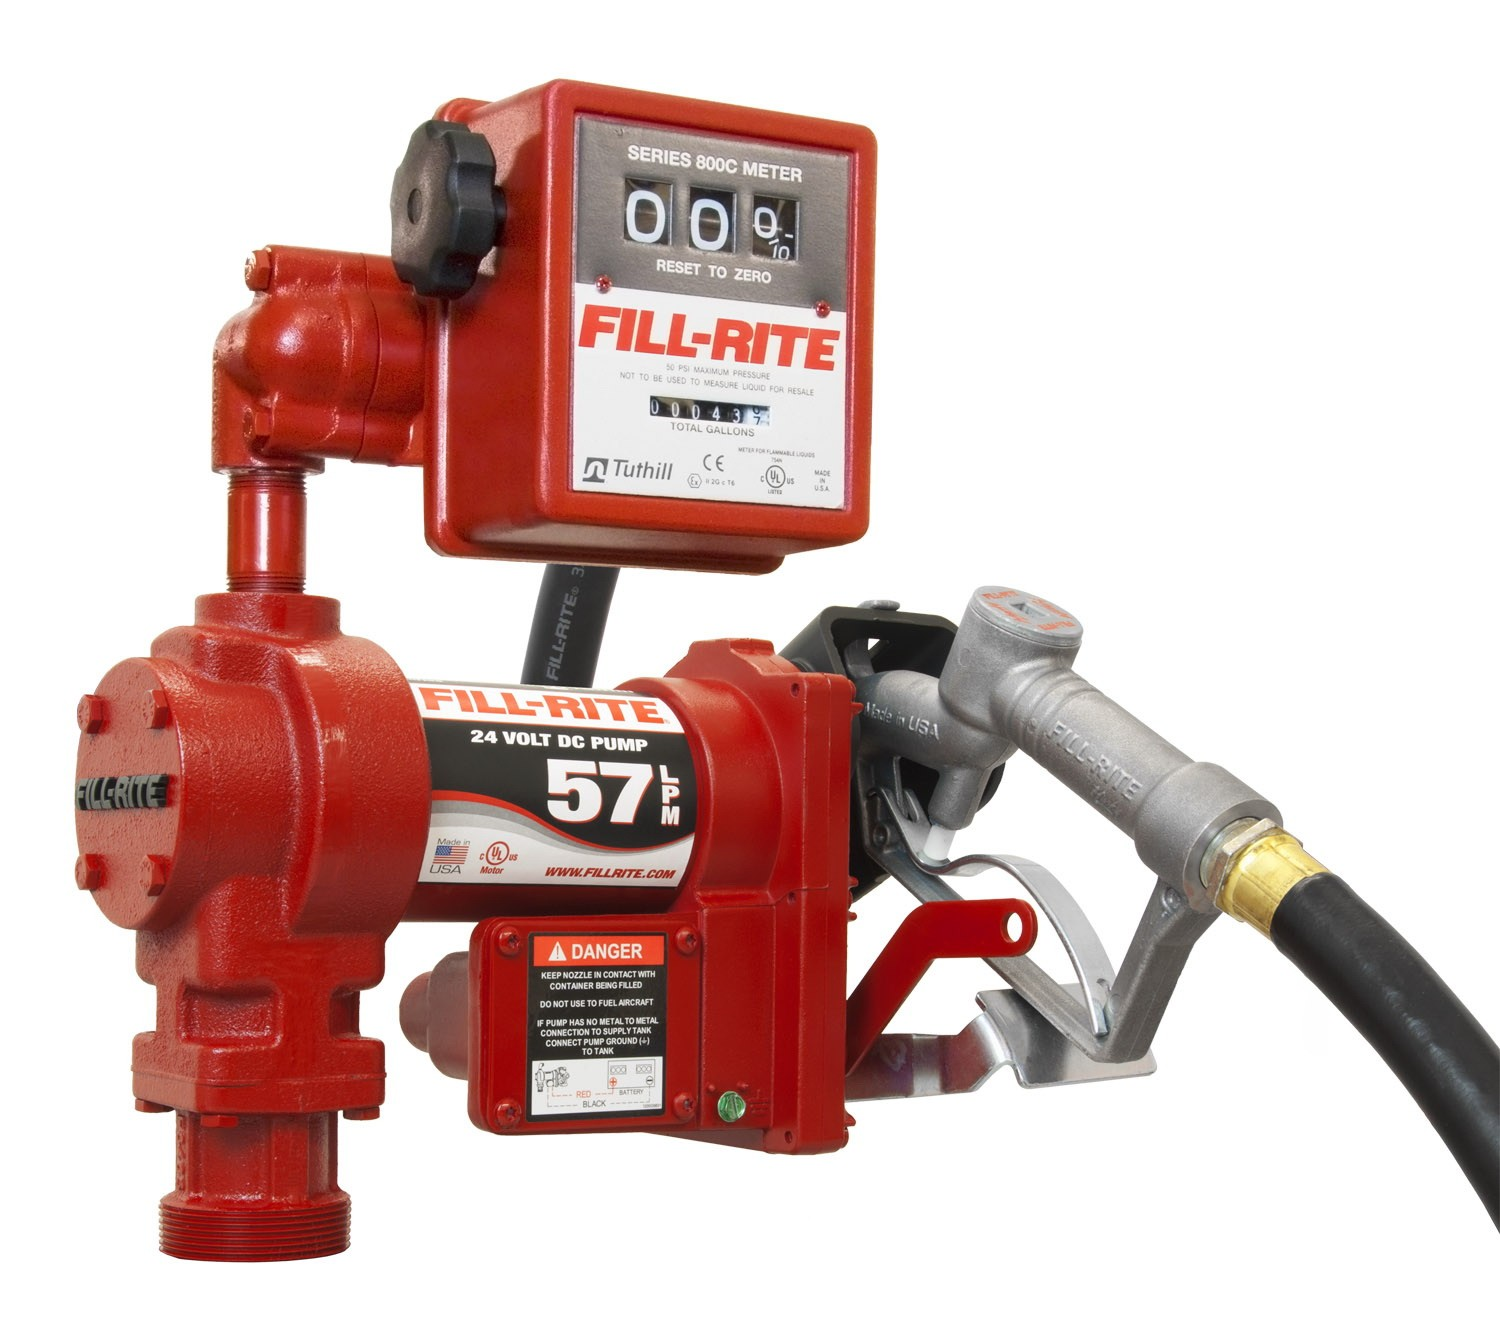 Fill-Rite FR2411G 24 Volt DC Pump with 807C Mechanical Meter (15 GPM)